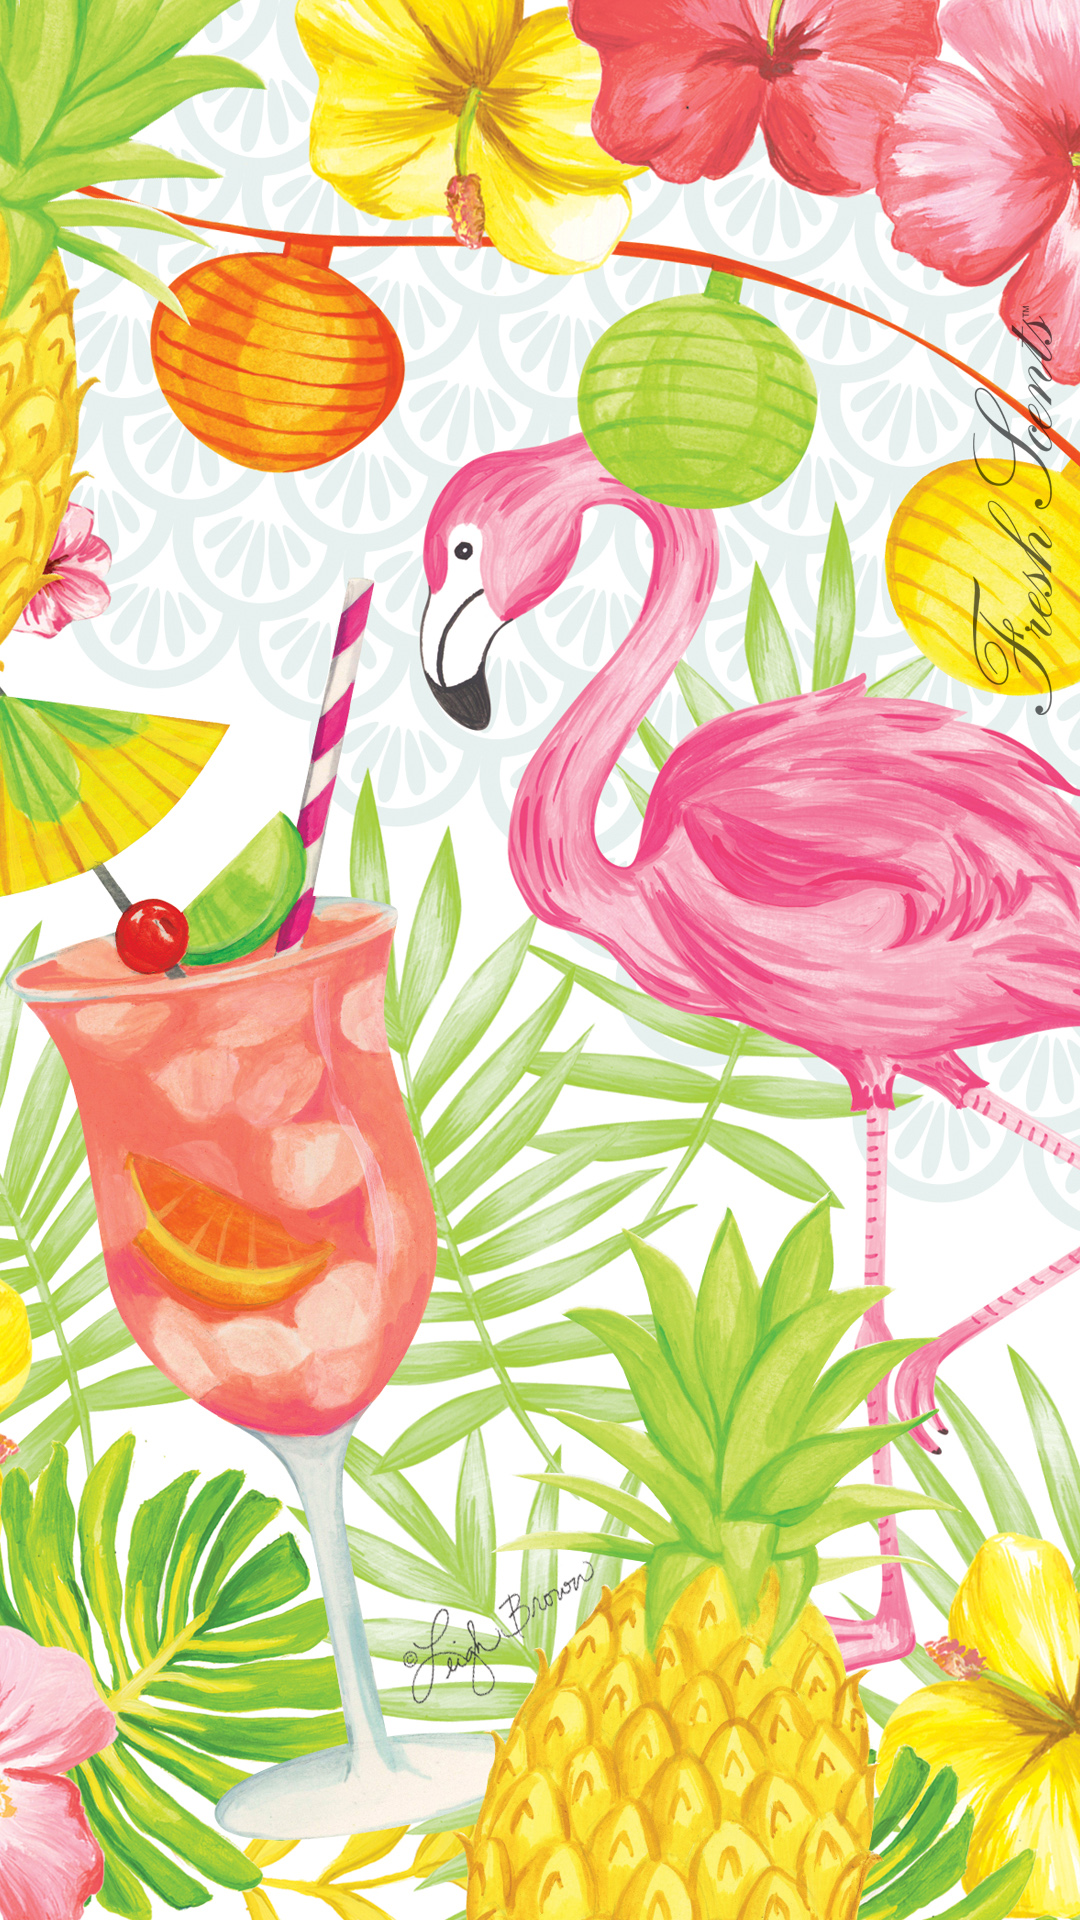 Carry-the-beautiful-Flamingo-Party-sachet-artwork-with-you-for-a-little-taste-of-summer-on-your-phon-wallpaper-wpc9003371